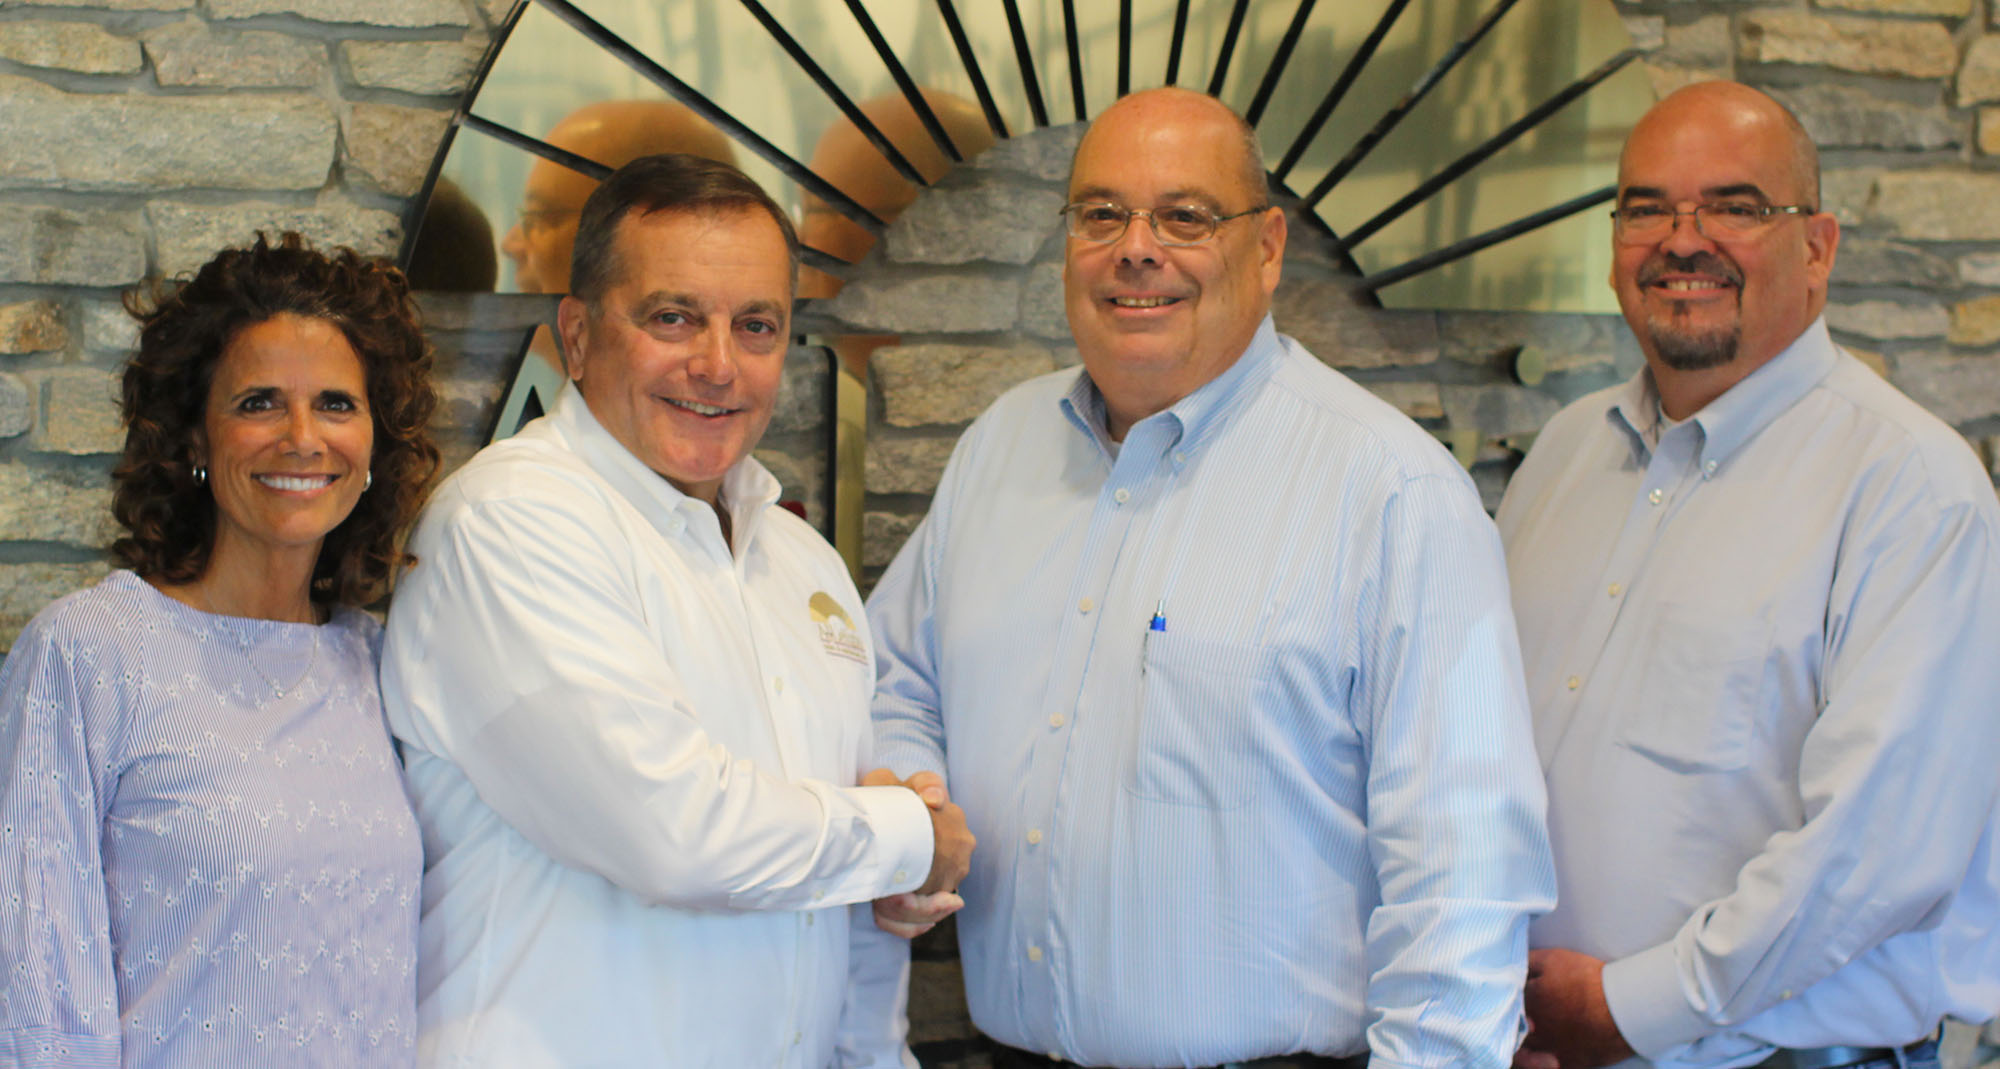 A.J. Letizio acquires M.J. Comerford Associates of Parlin NJ, growing Metro NY Region presence and Opens Regional HQ in Parlin.